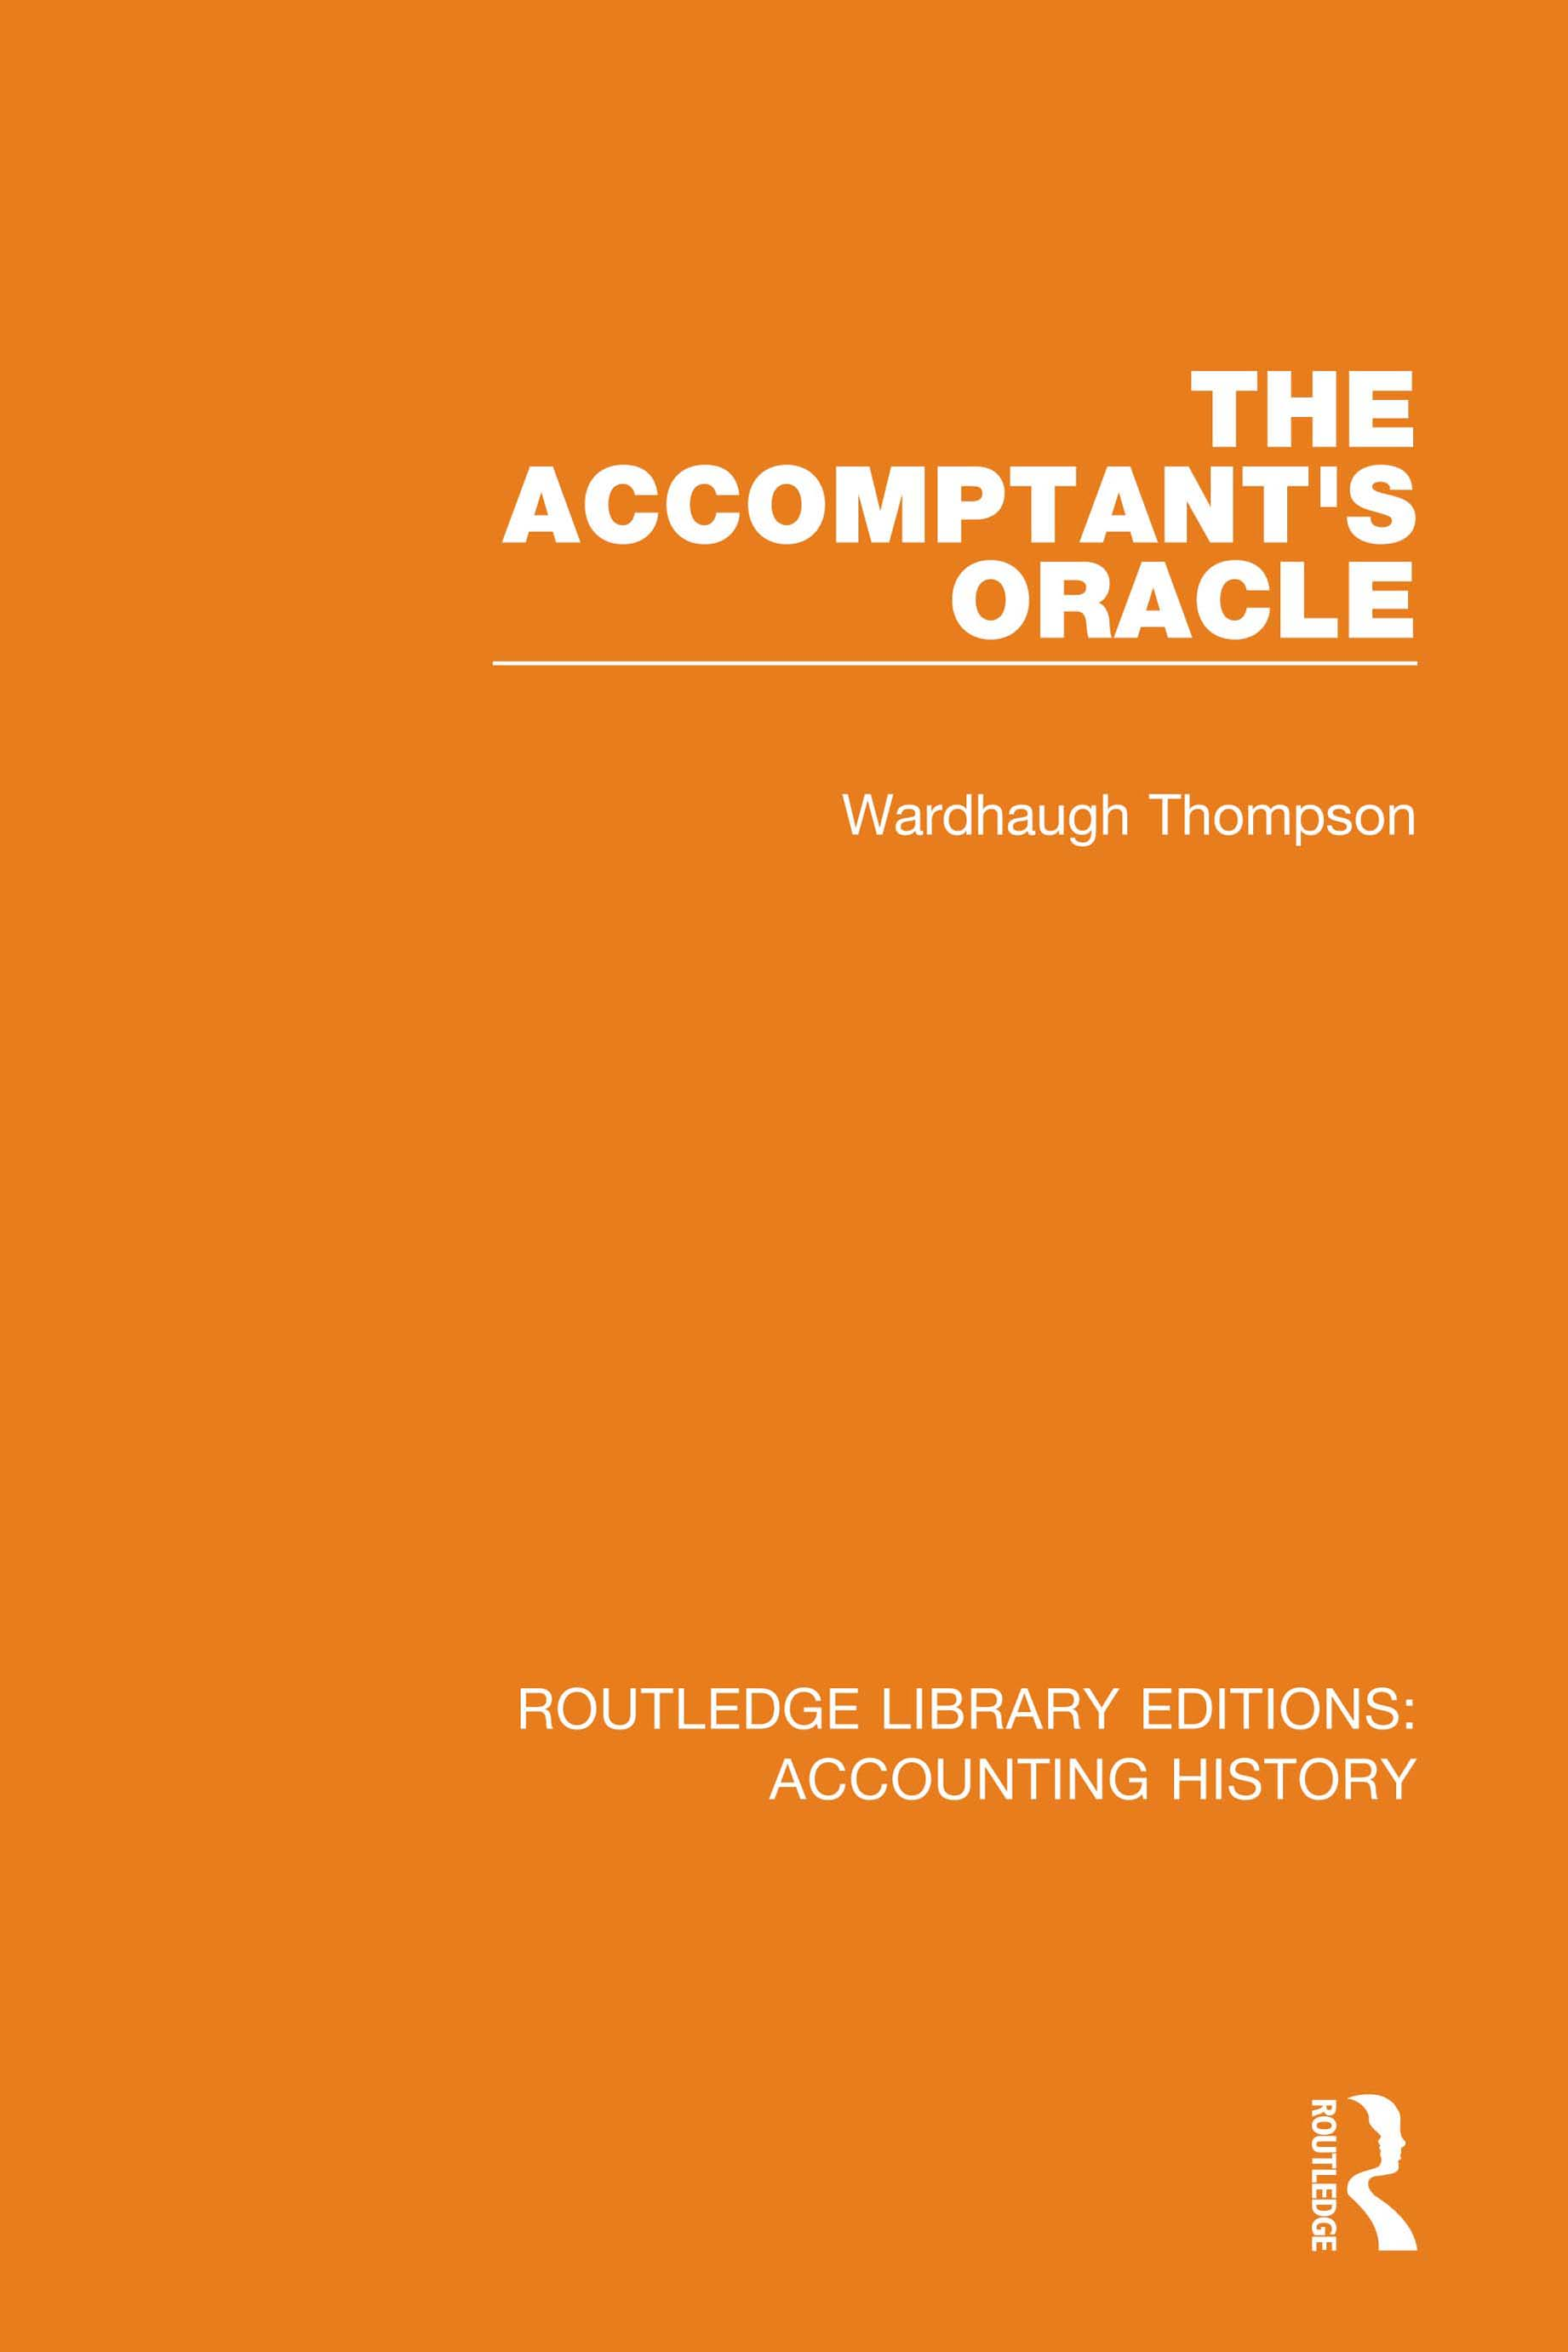 The Accomptant's Oracle